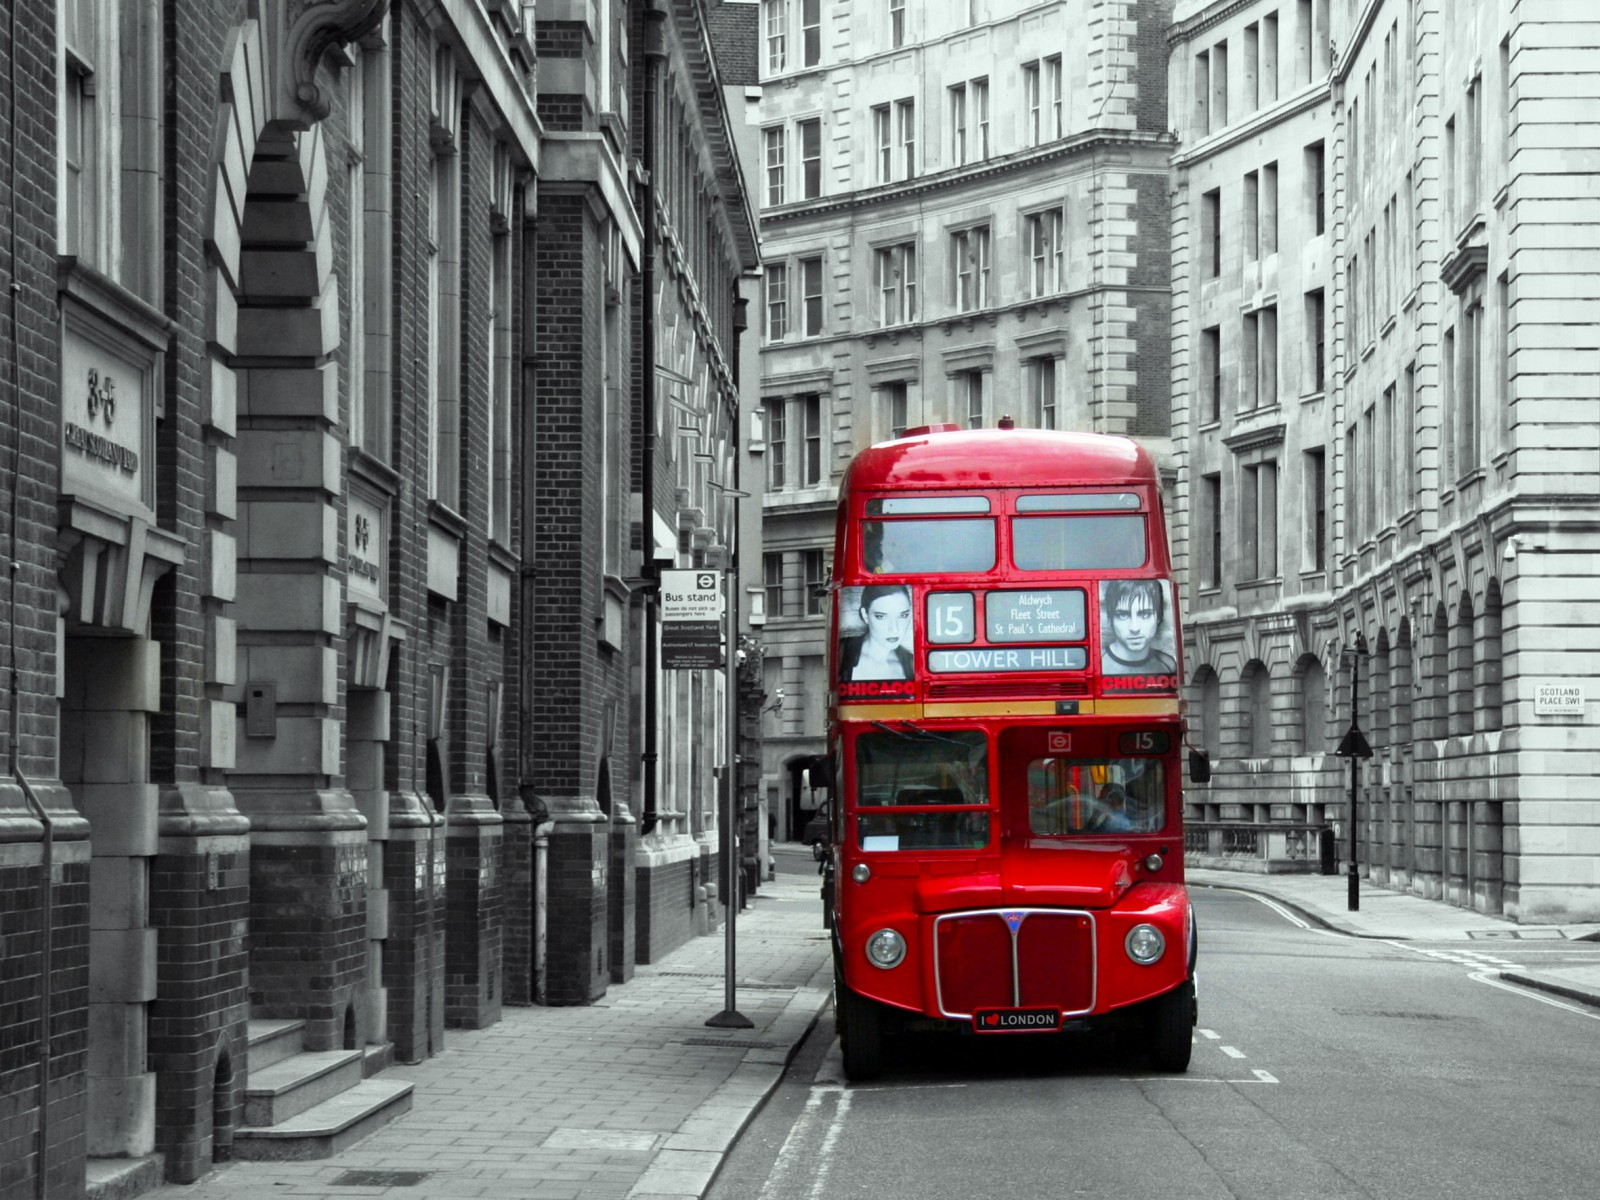 Xxl photo wallpaper mural london england routemaster for Black and white london mural wallpaper